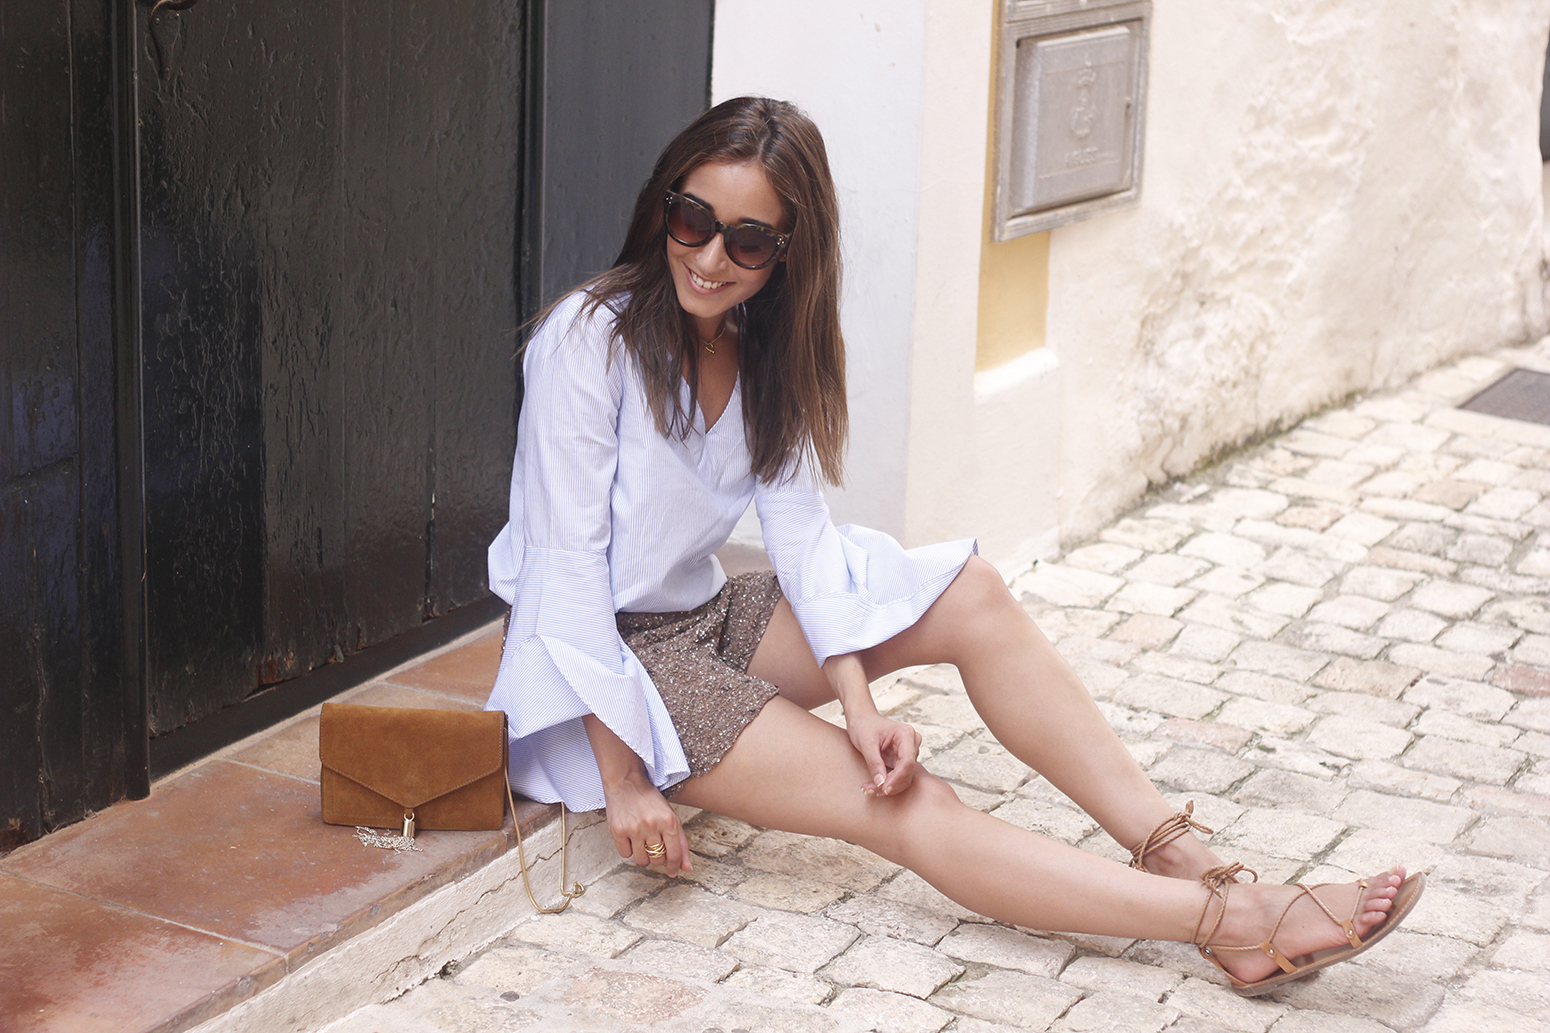 sequined shorts bell sleeves striped shirt summer flat sandals summer fashion outfit09